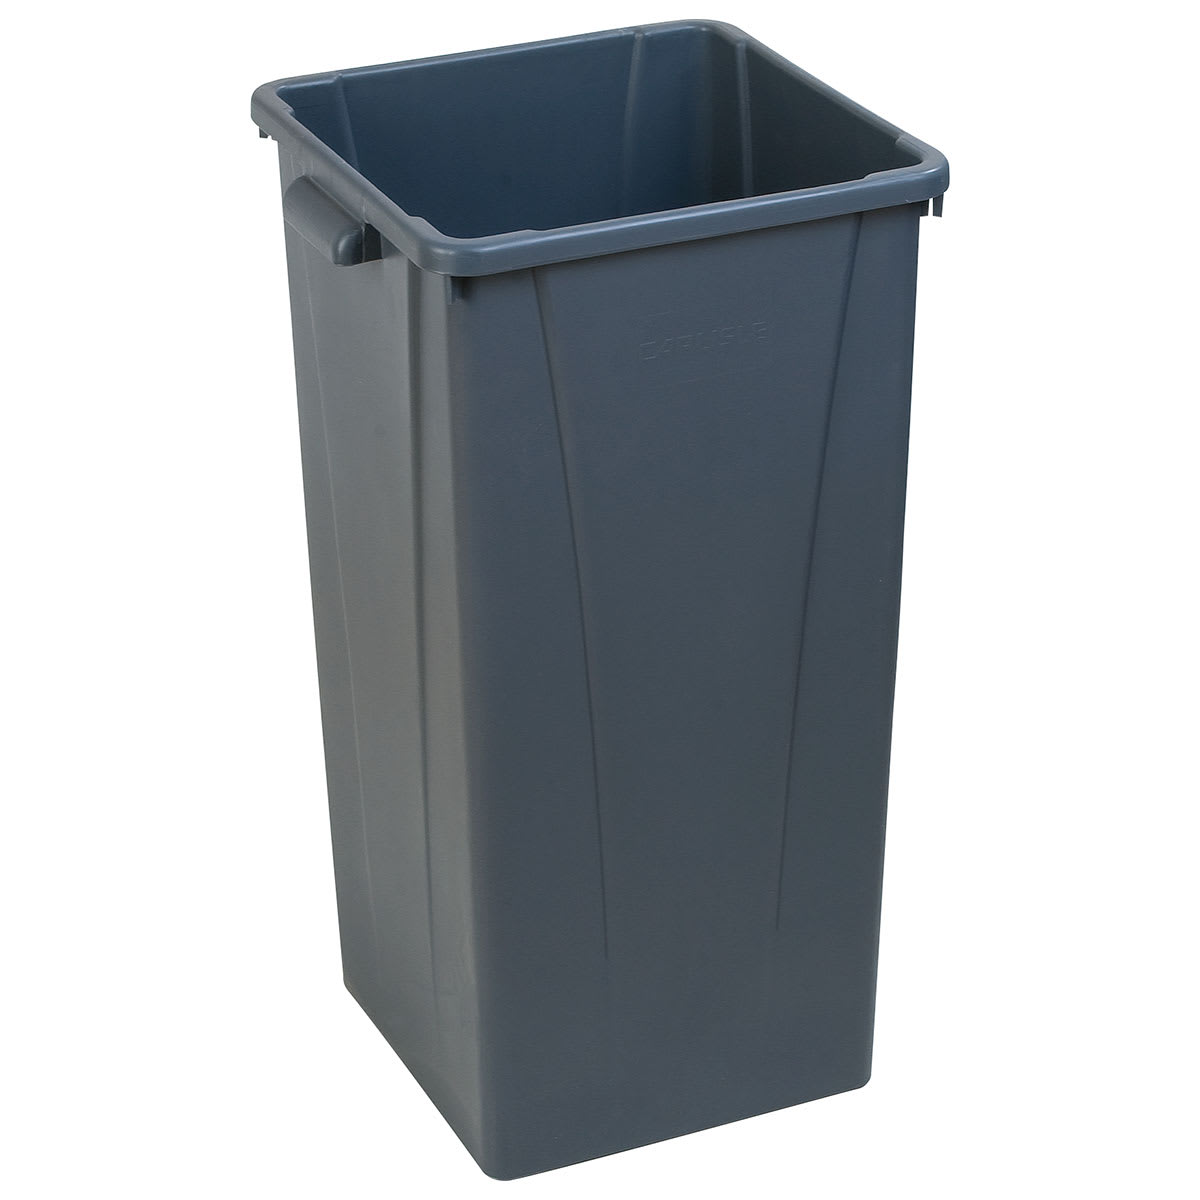 Carlisle 34352323 23 gallon Commercial Trash Can - Plastic, Square, Built-in Handles